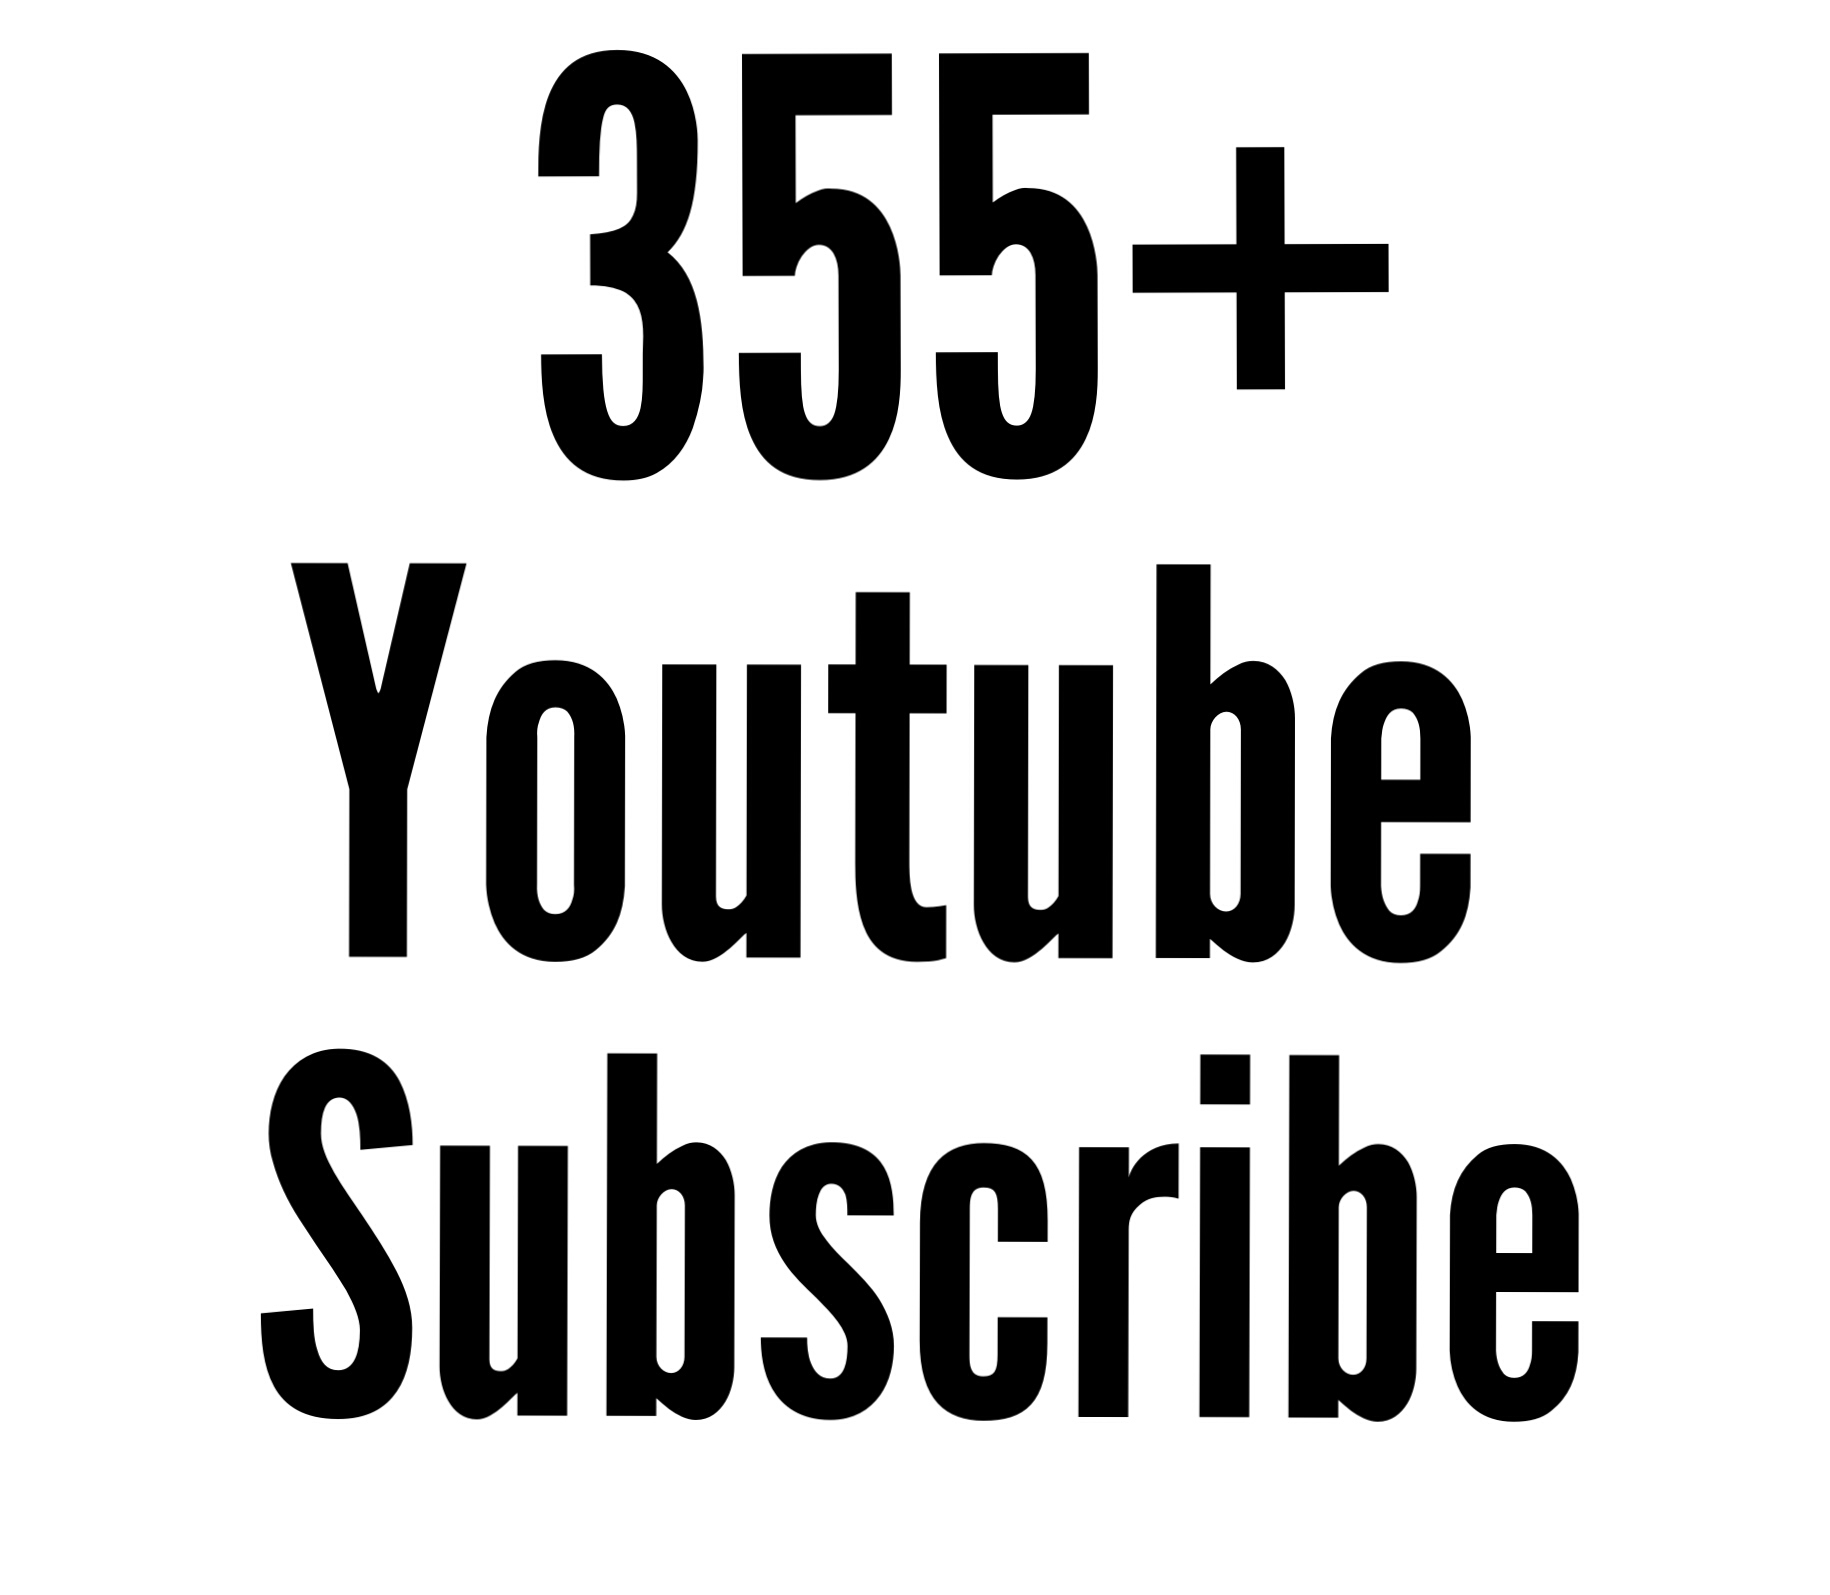 Active 355+ You tube Subs cribe nondrop guaranteed